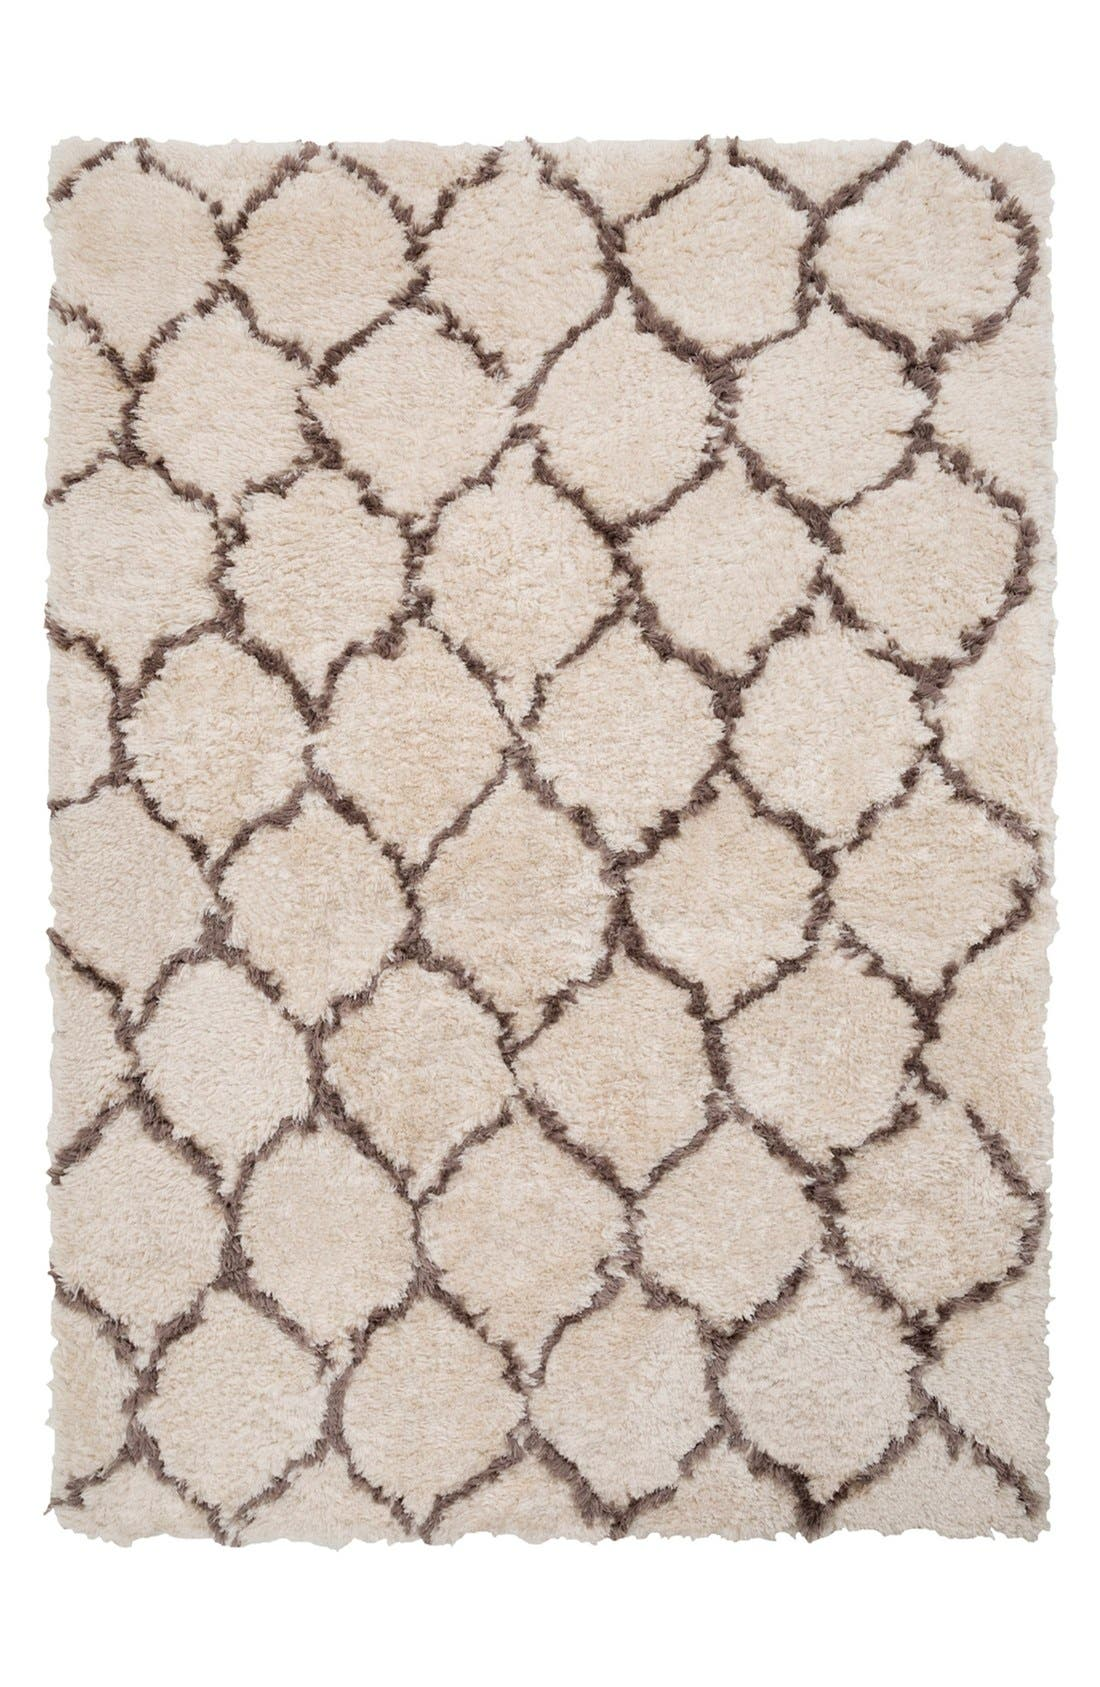 'Scout' Hand Tufted Rug,                             Main thumbnail 1, color,                             Light Grey/ Olive